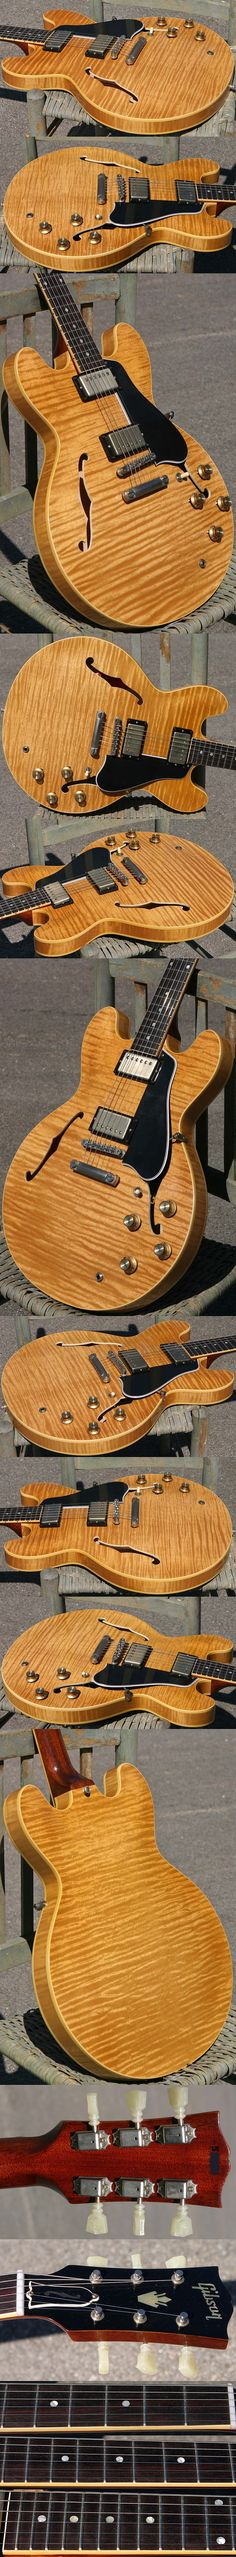 Gibson 2015 Memphis 1961 Dot ES-335 Reissue w/ Highly Figured Maple